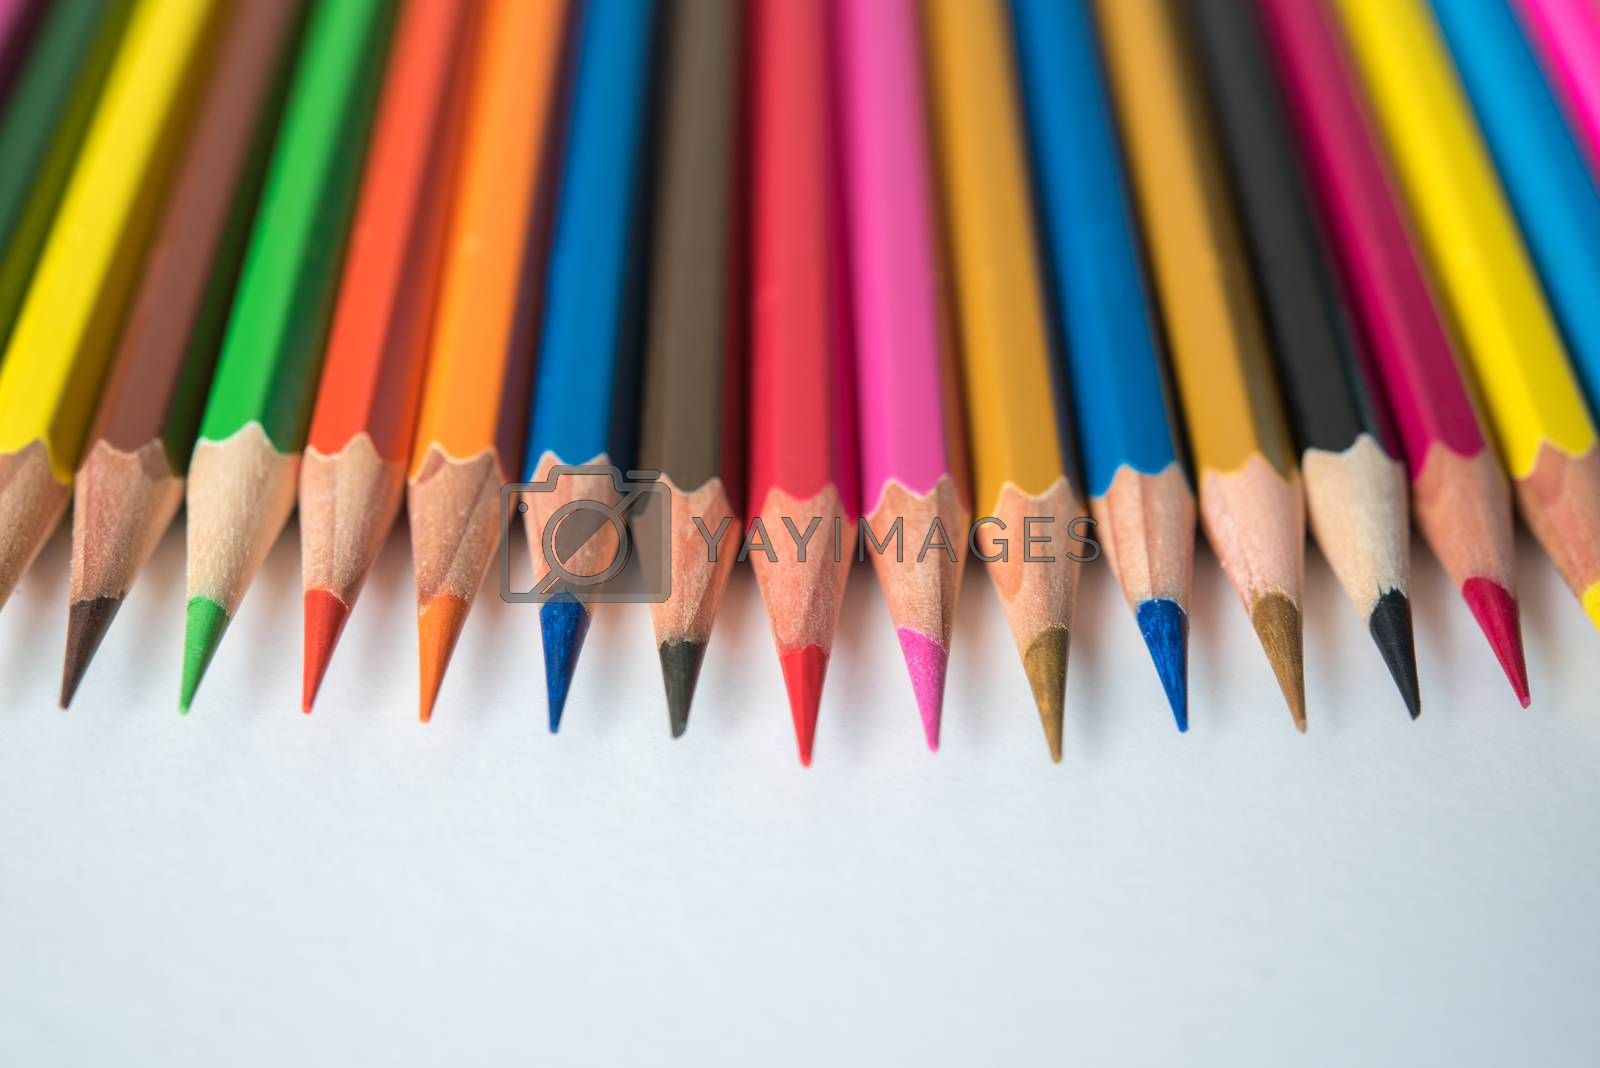 rows of multicolor pencil on white background by Lerttanapunyaporn